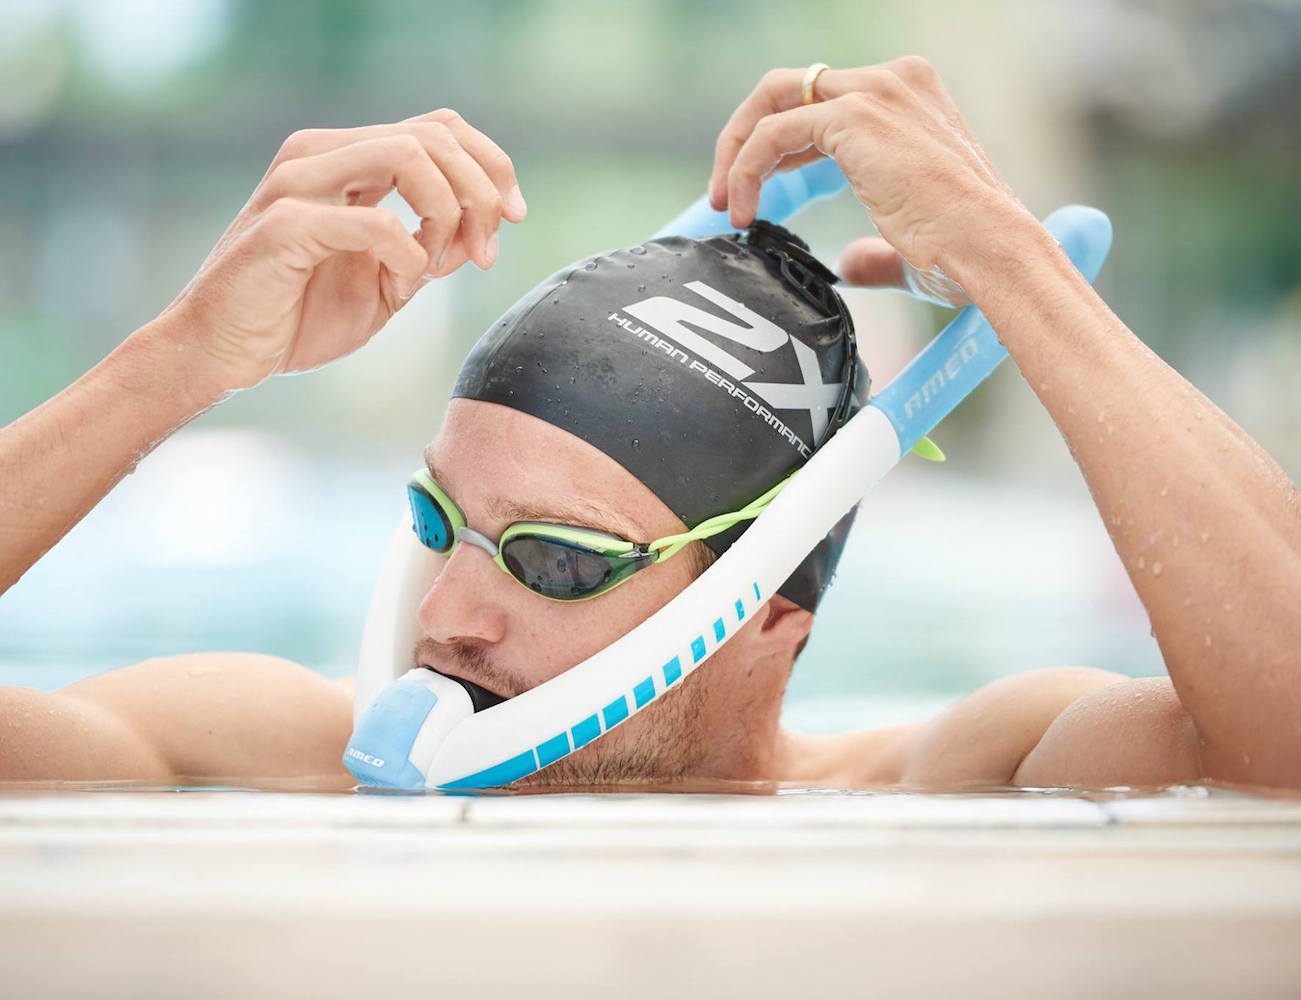 ameo-powerbreather-swimming-device-03